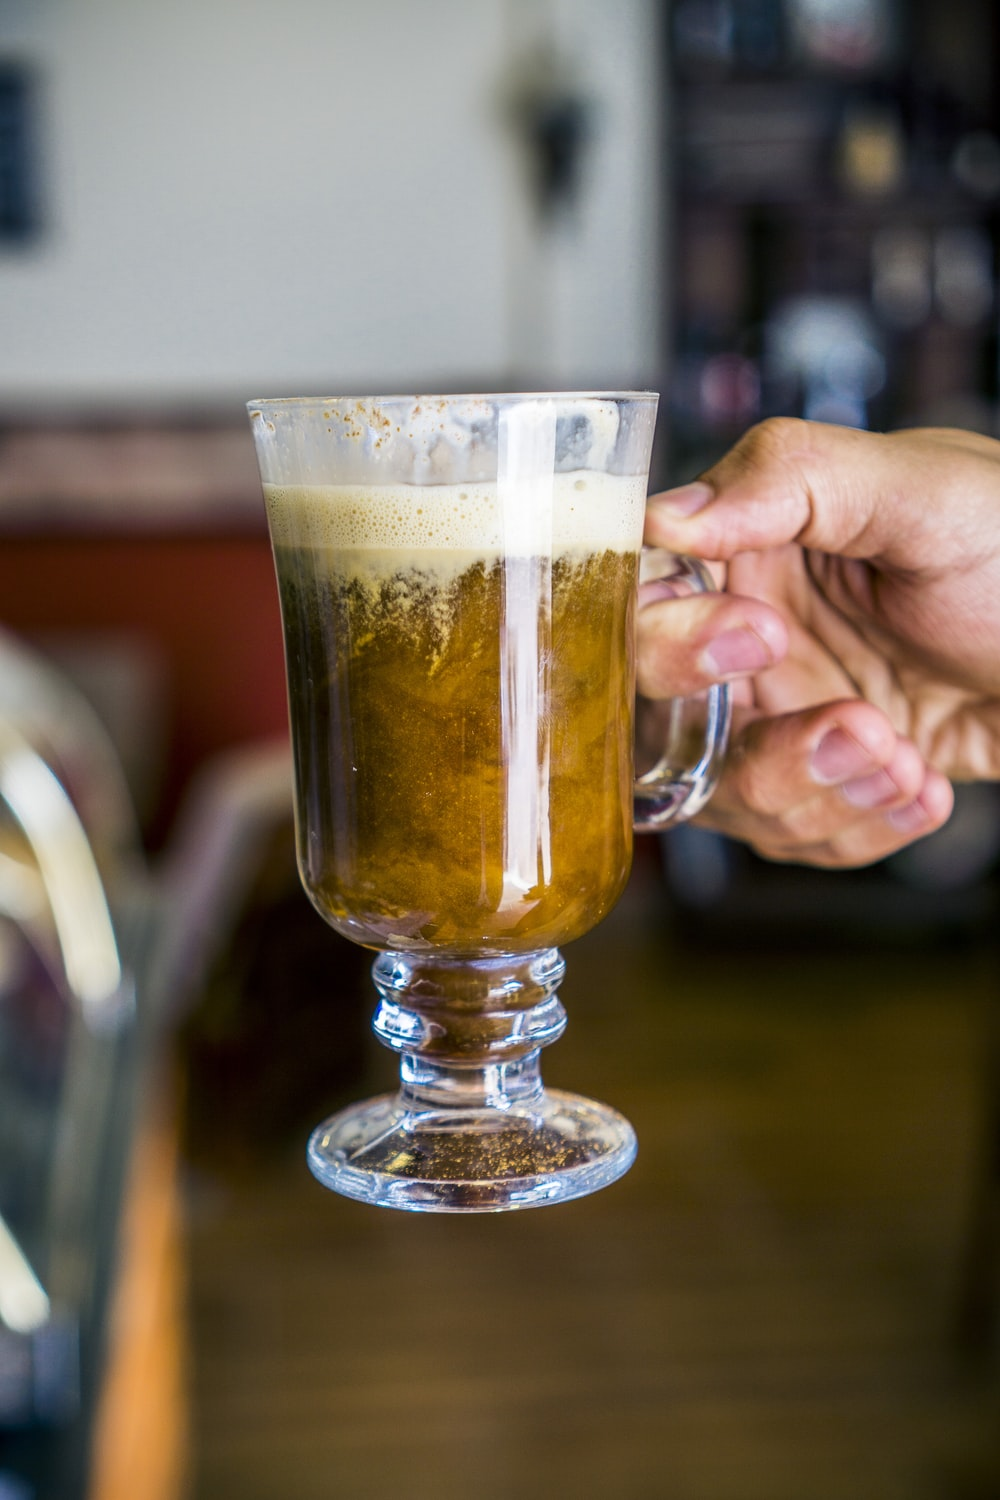 person holding glass mug with brown liquid